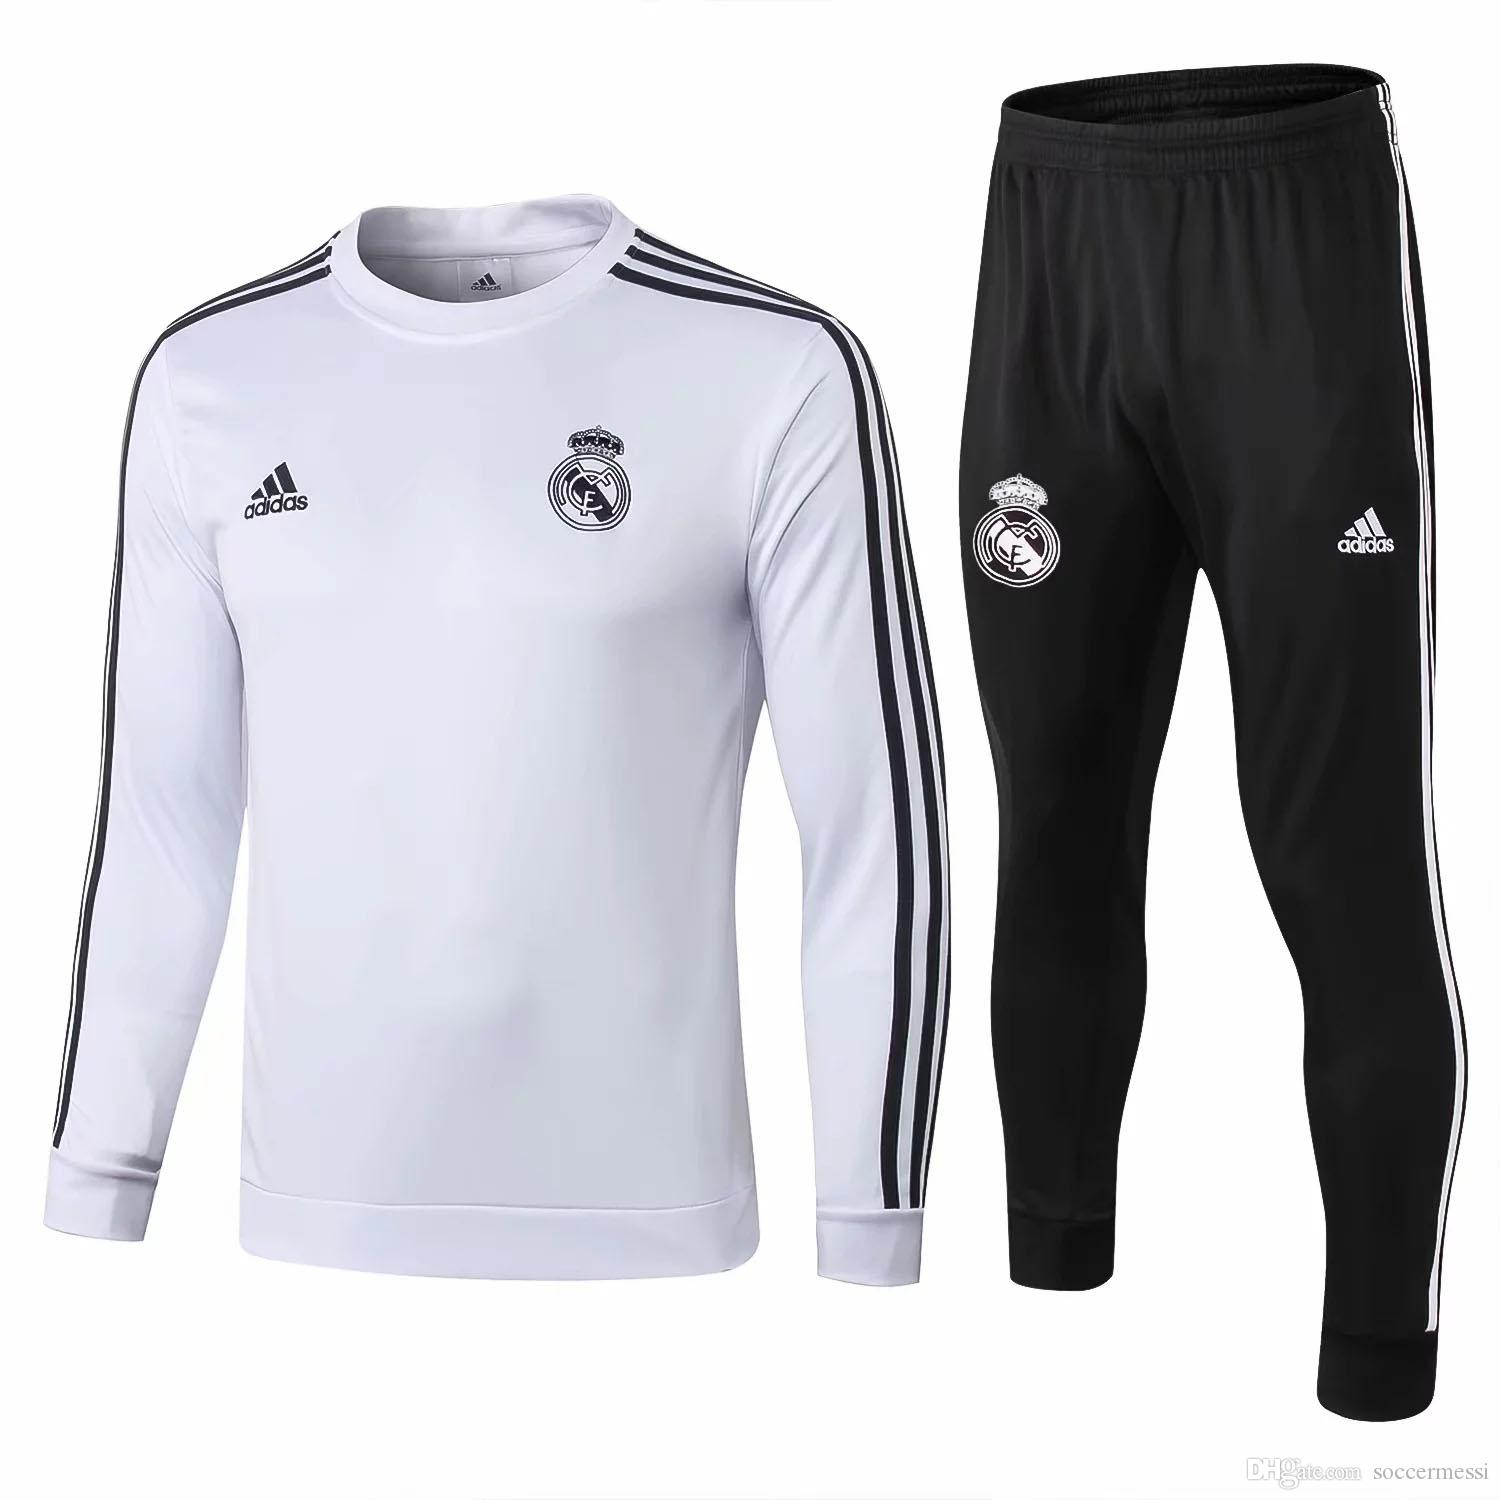 new concept 5f776 ba0e7 Best-selling new Real Madrid jerseys No. 9 Benzema home and away training  suit 2018 2019 football uniform Modric competition training suit